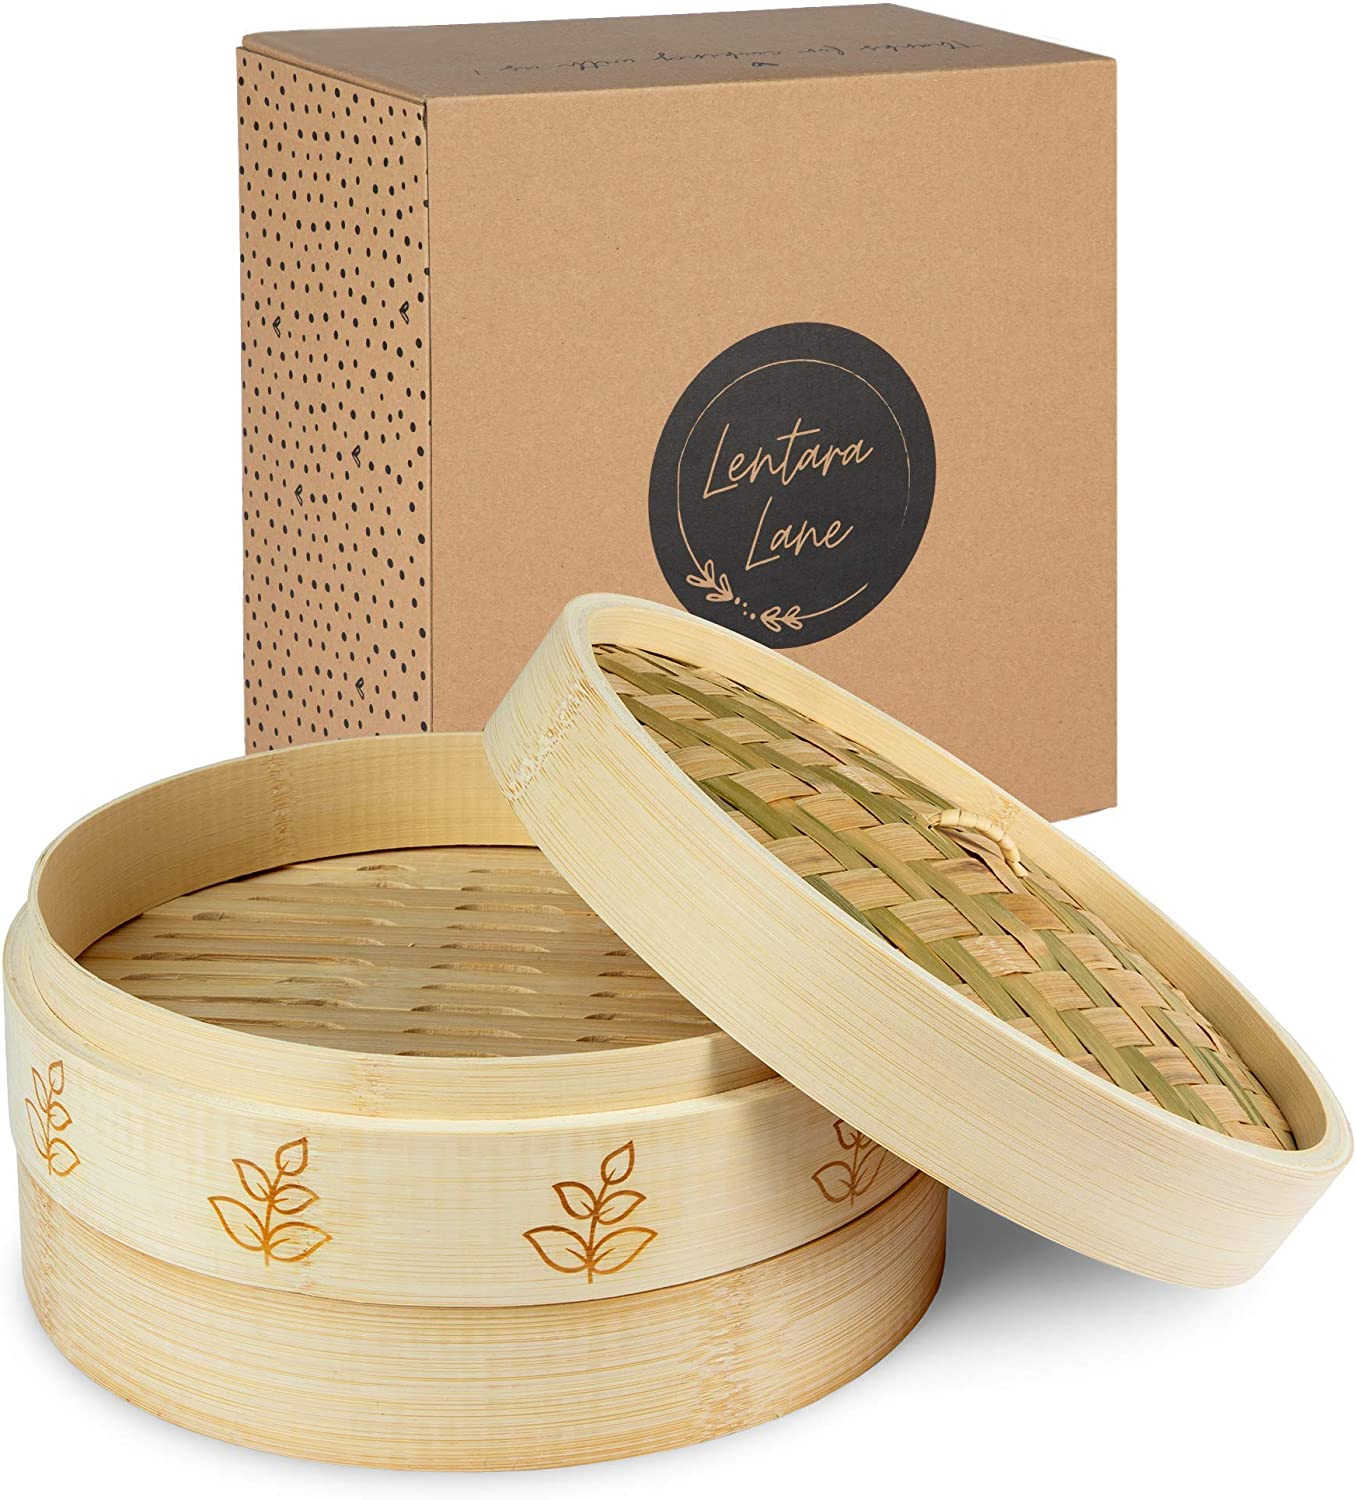 Bamboo Steamer 10 Inch | Premium 2 Tier Dumpling Steamer & Lid | Steamer basket perfect as a Chinese Dim Sum, Bao Bun, Momo, Rice & Vegetable Steamer | Steam Cooking for Healthy Food (Leaf)